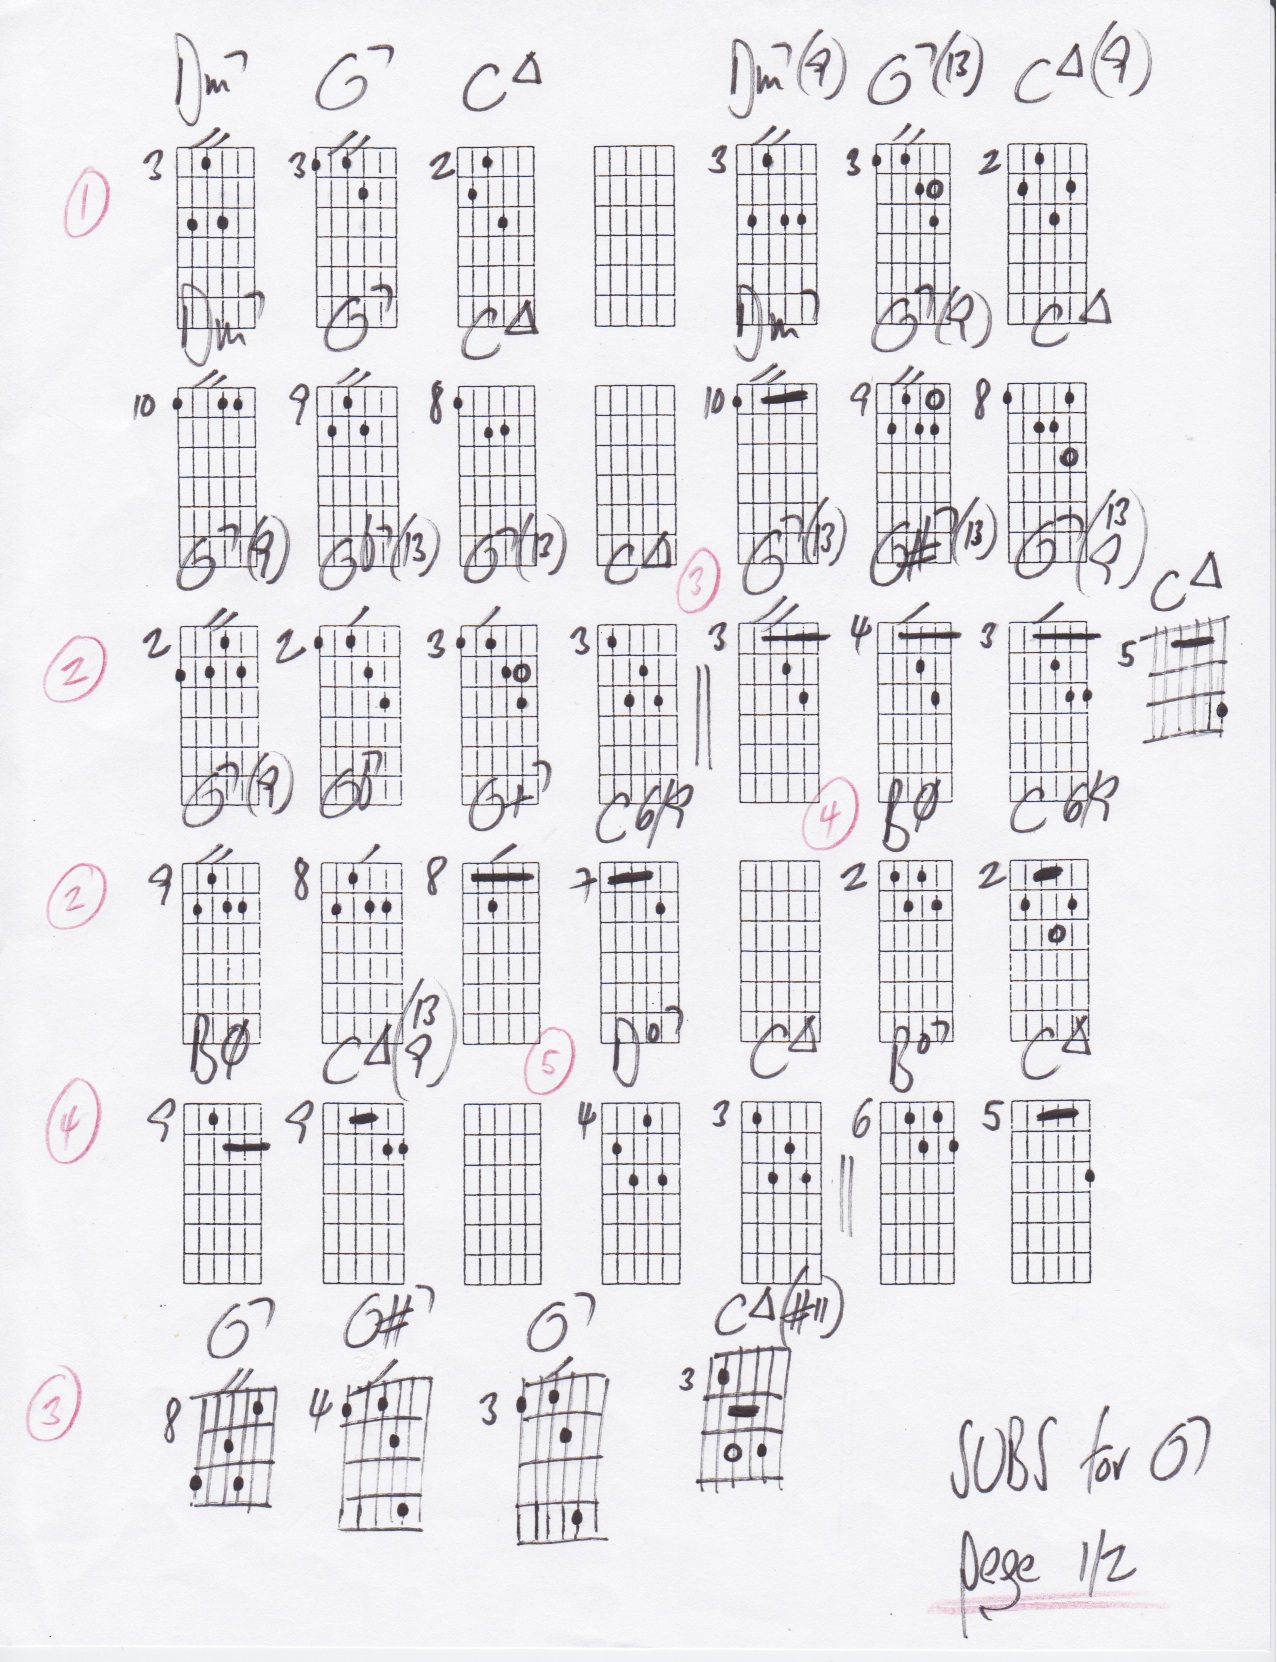 Basic Subs For G7 Chord Substitutions For Dominant Chords Bruno